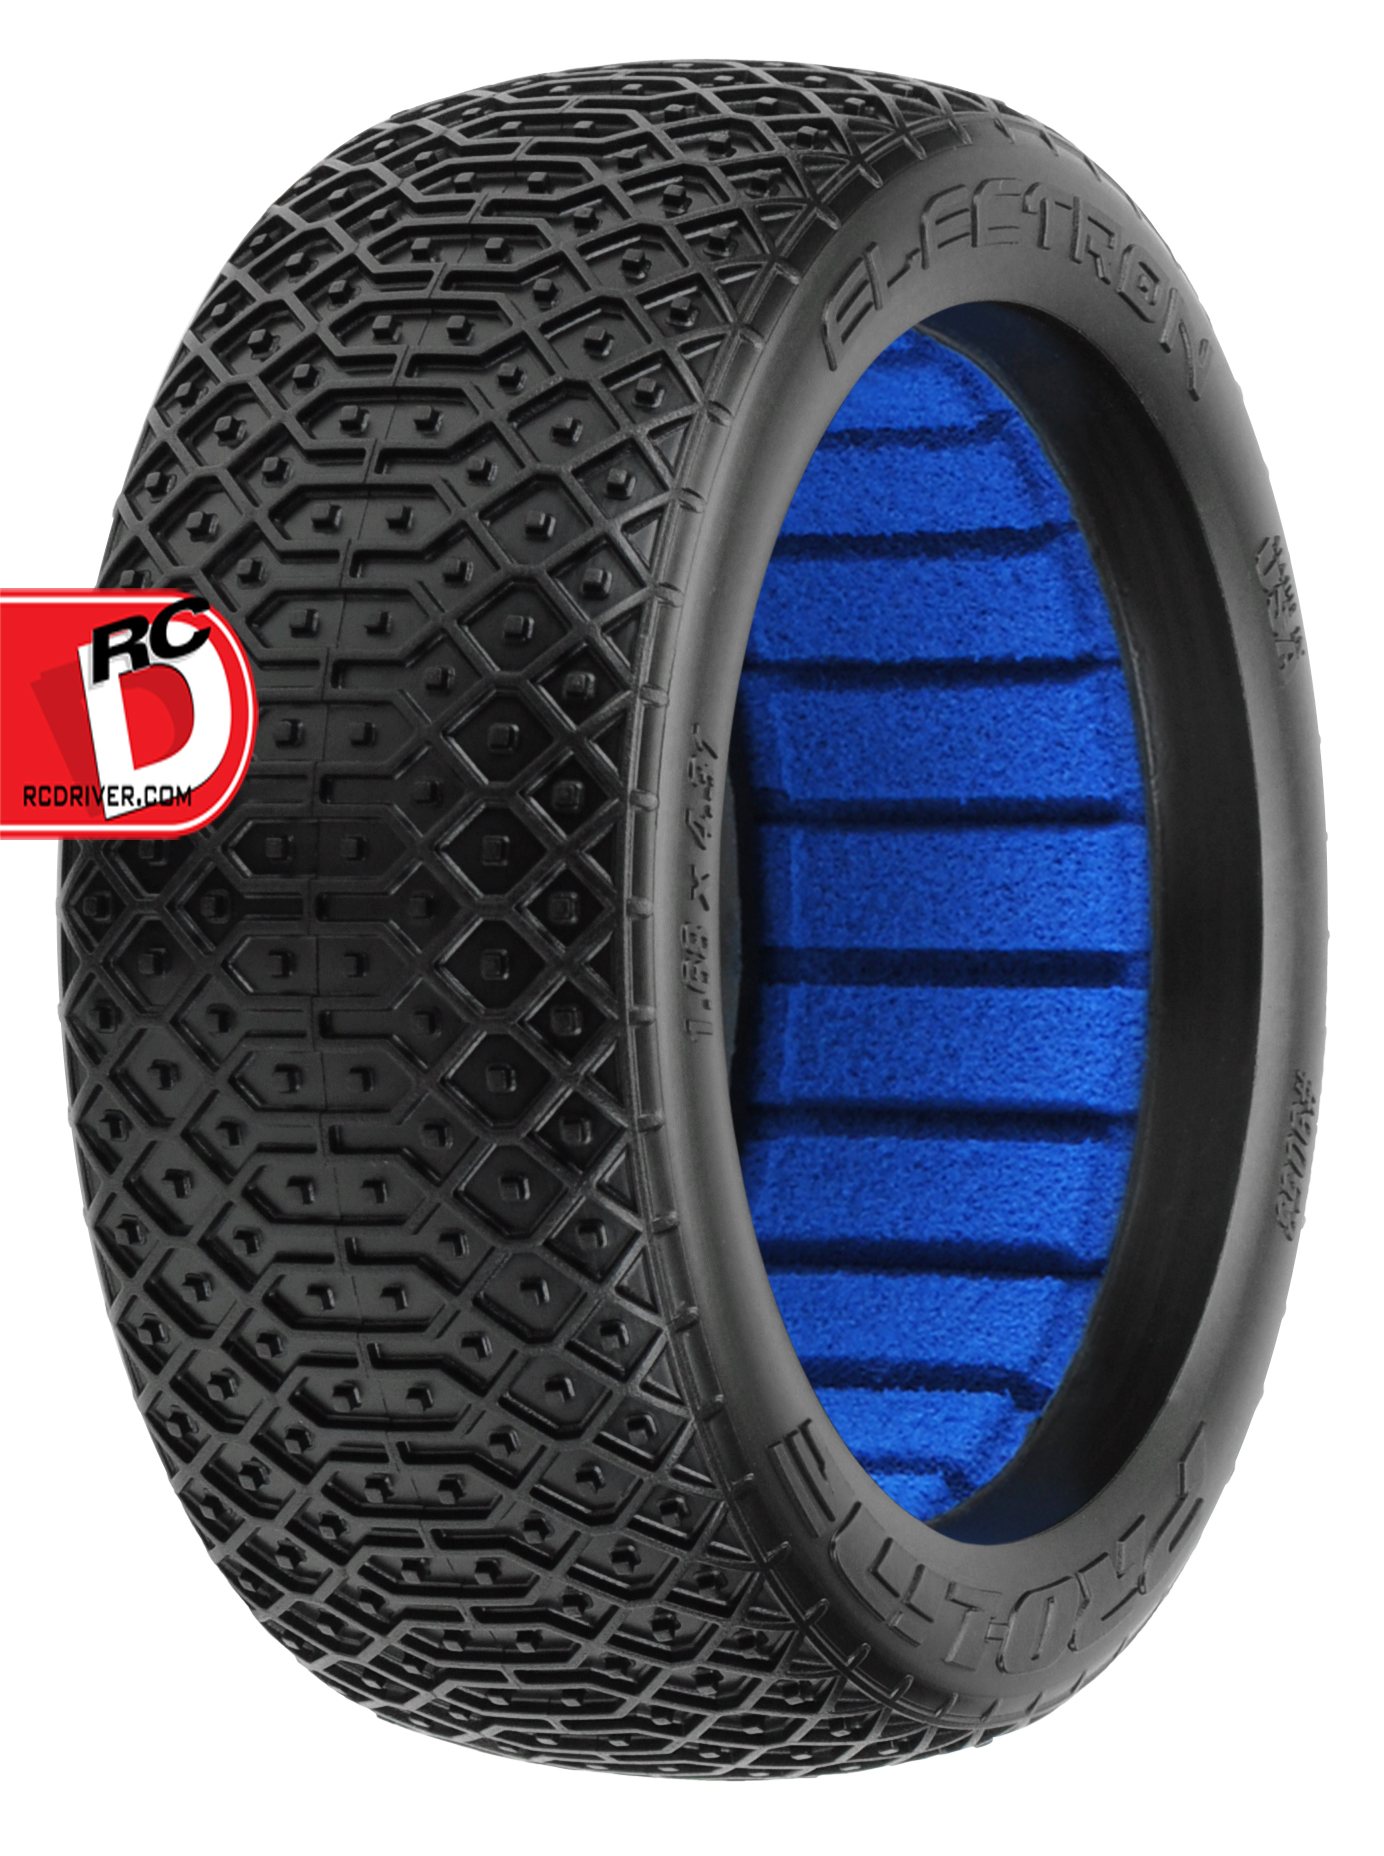 Pro Line Electron 1 8 Off Road Buggy Tires